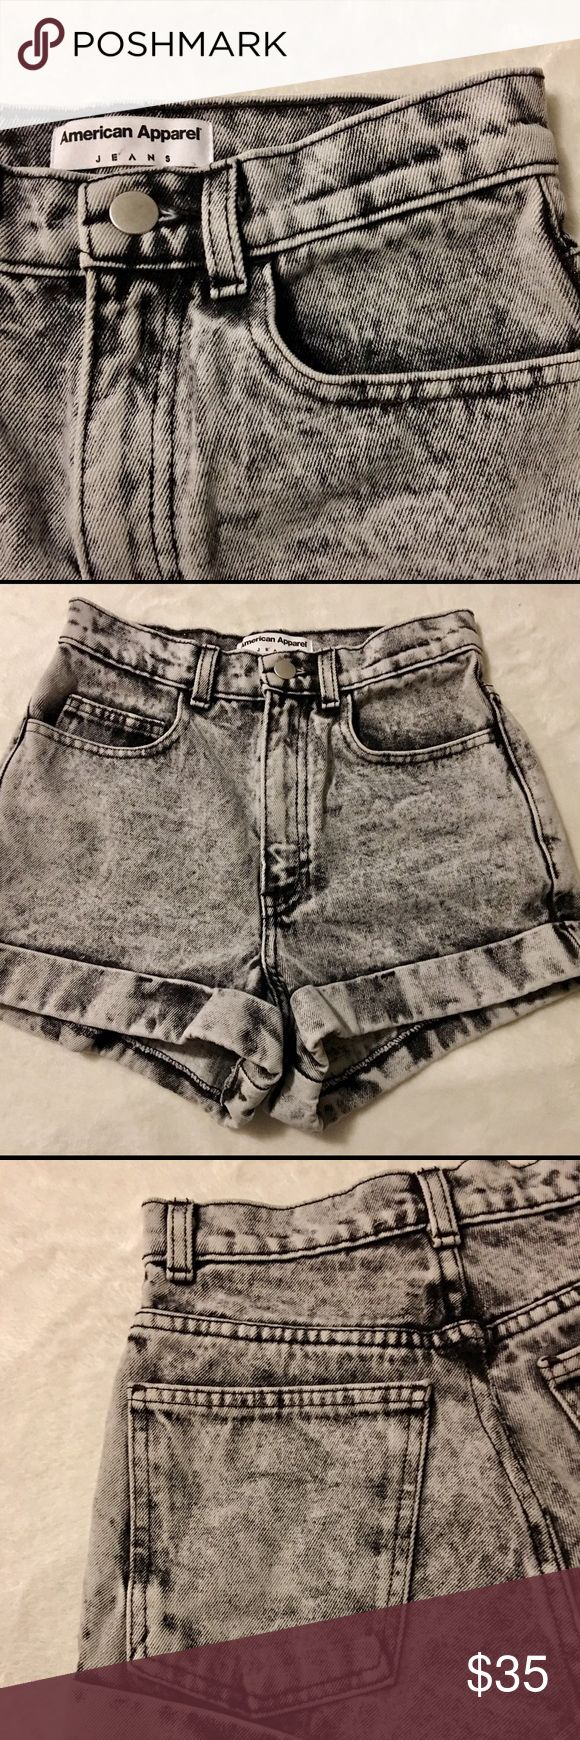 AMERICAN APPAREL ACID WASH HIGH WAIST SHORTS 24 AA NEW WITHOUT TAGS - ACID WASH JEANS IN A SIZE 24. THEY ARE IN EXCELLENT CONDITION, NO FLAWS. MAKE AN OFFER ON A BUNDLE TO SAVE. QUESTIONS, ASK AWAY! THANKS.:) American Apparel Shorts Jean Shorts